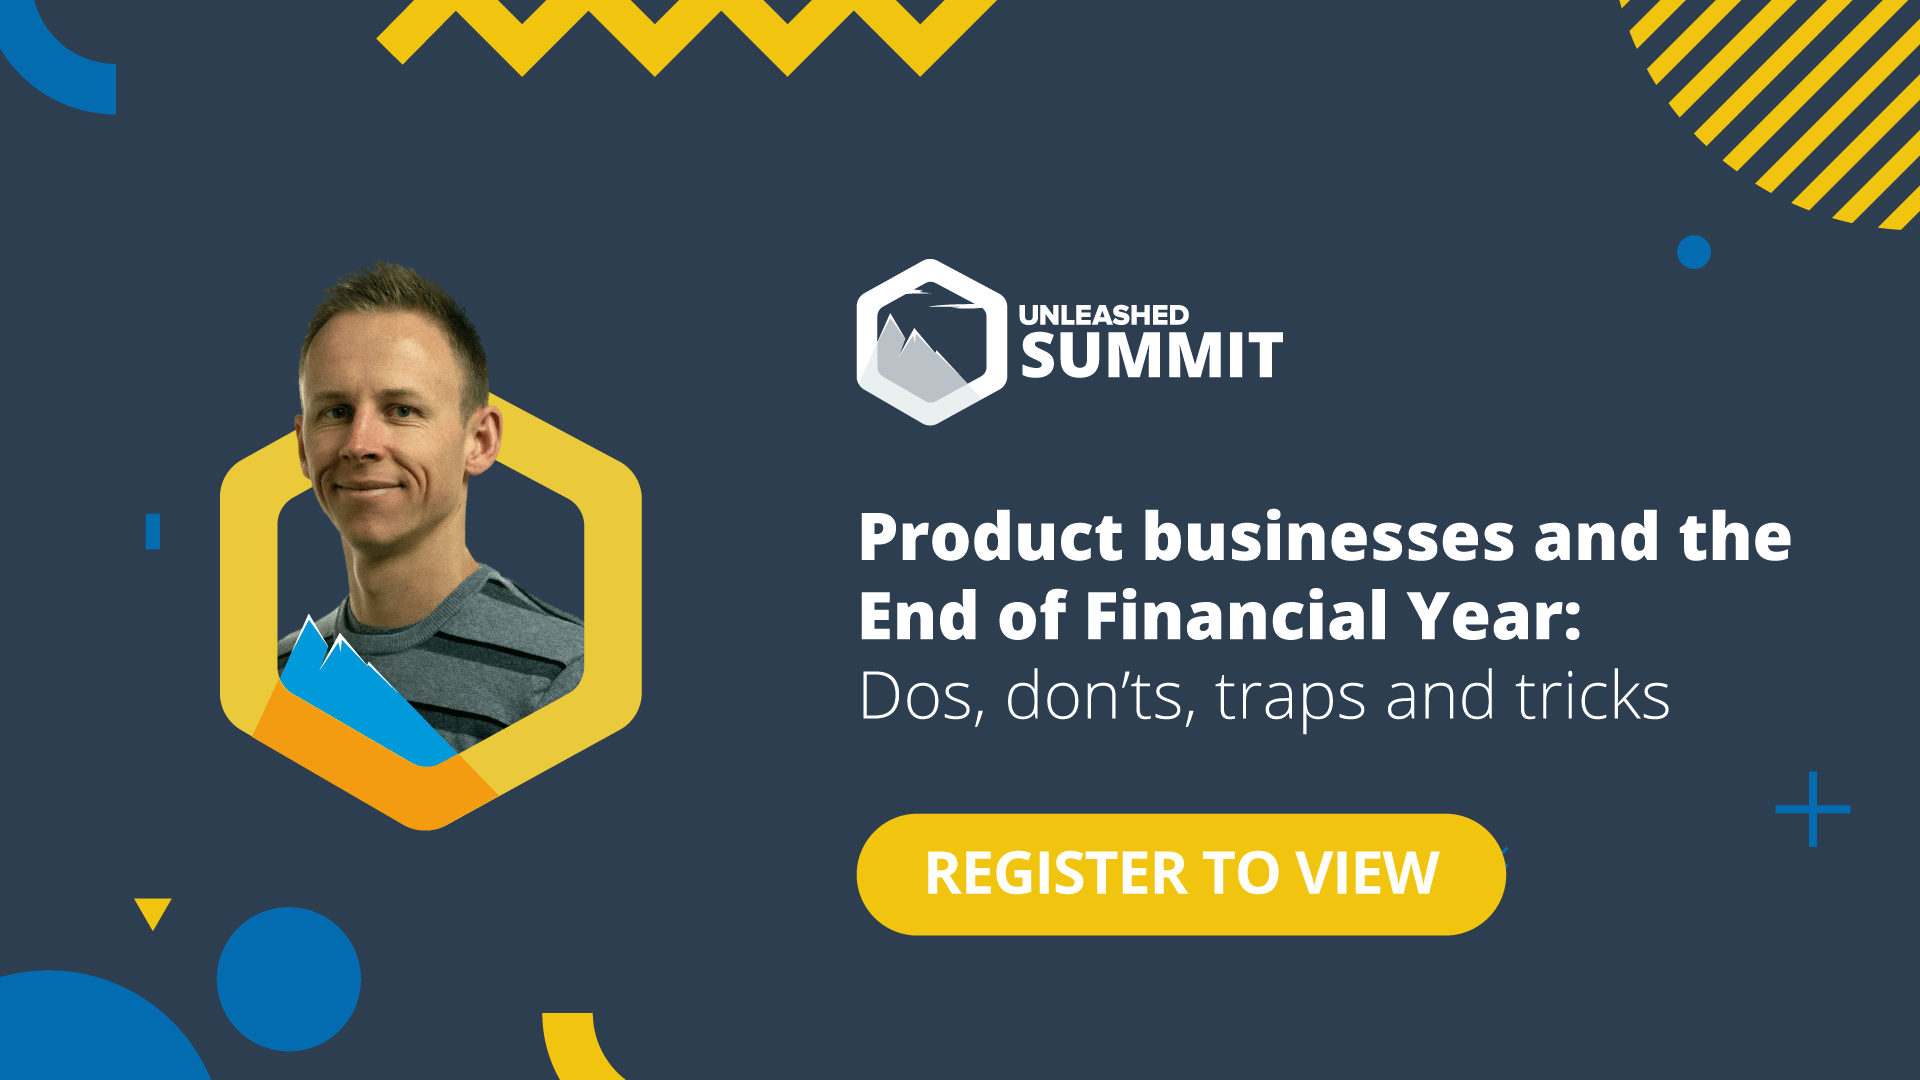 Unleashed Software Summit - June 2021 - Product businesses and the End of Financial Year: Dos, don'ts, traps and tricks